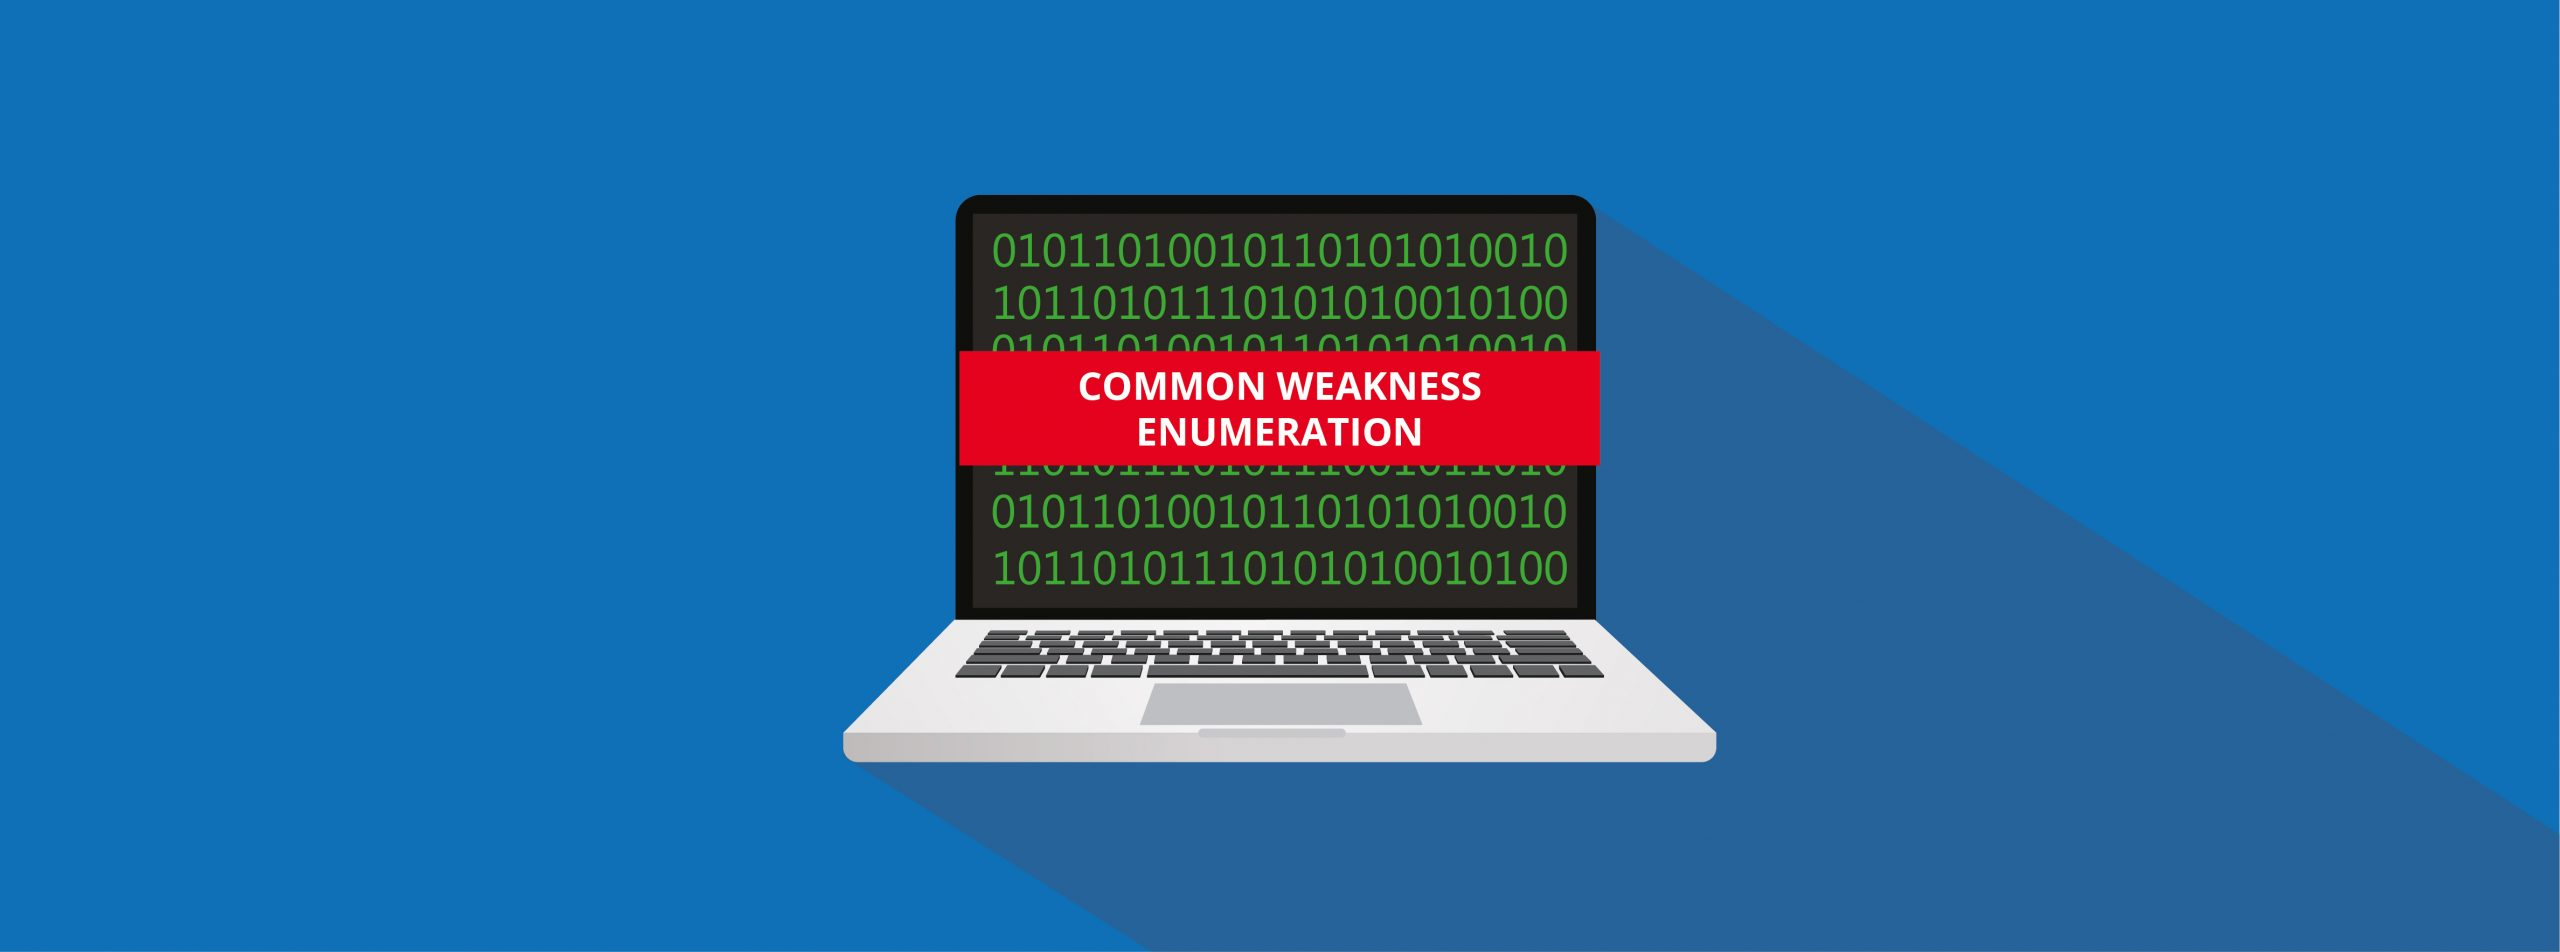 common weakness enumeration